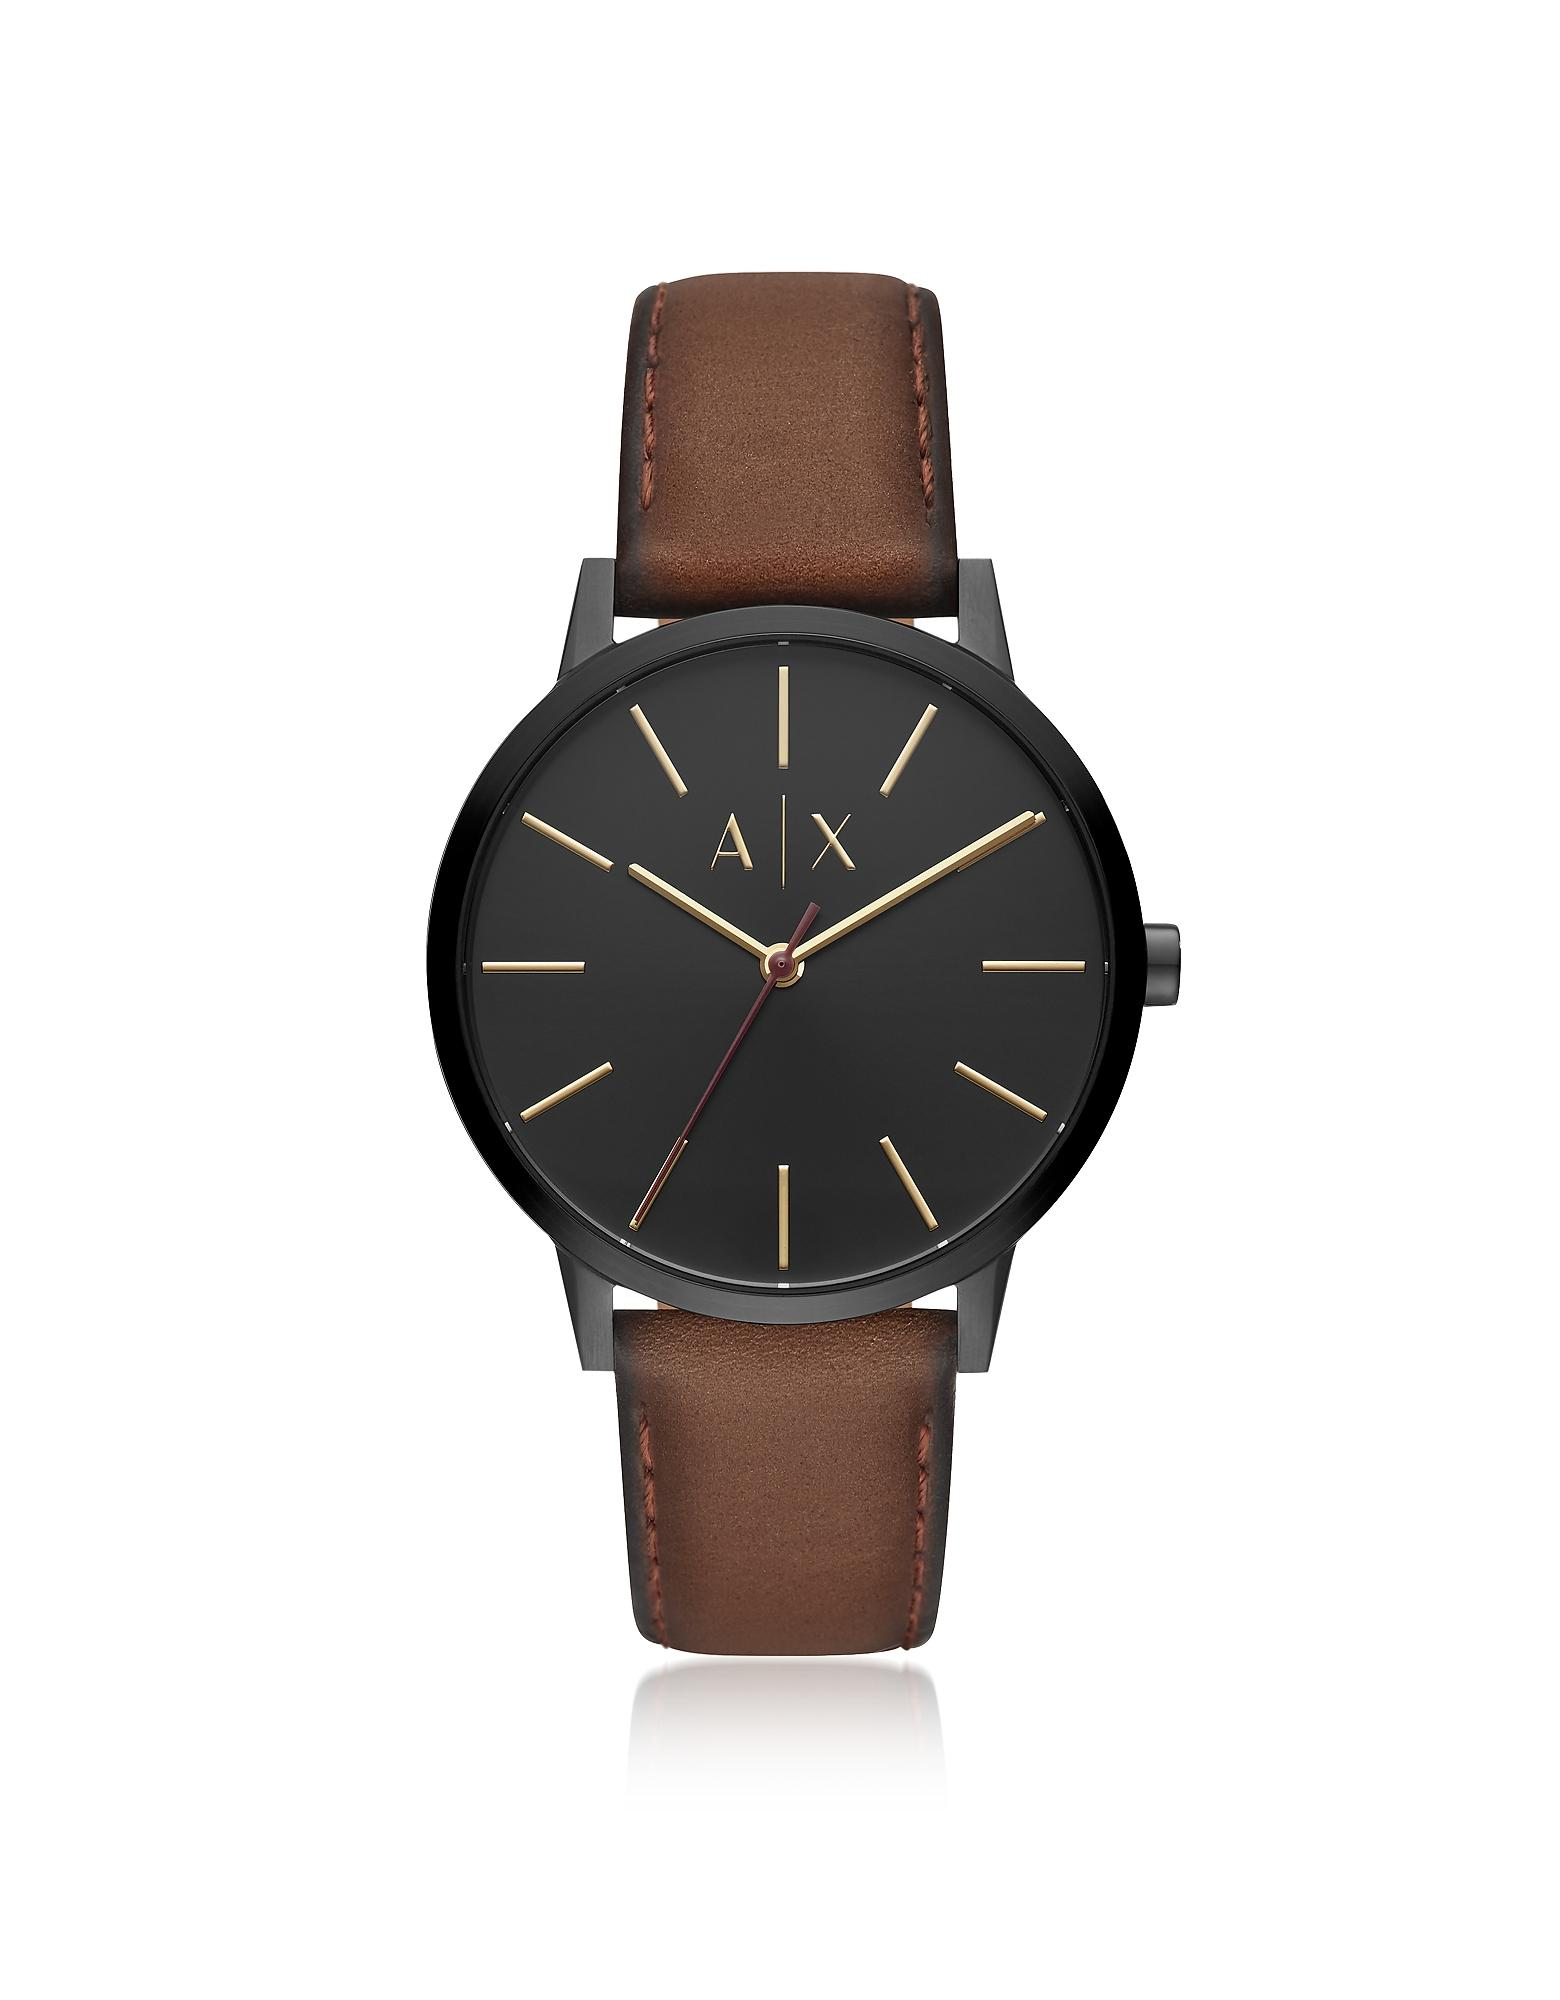 8c00257f2b284 Emporio Armani Cayde Burnished Leather Men's Watch in Black for Men ...